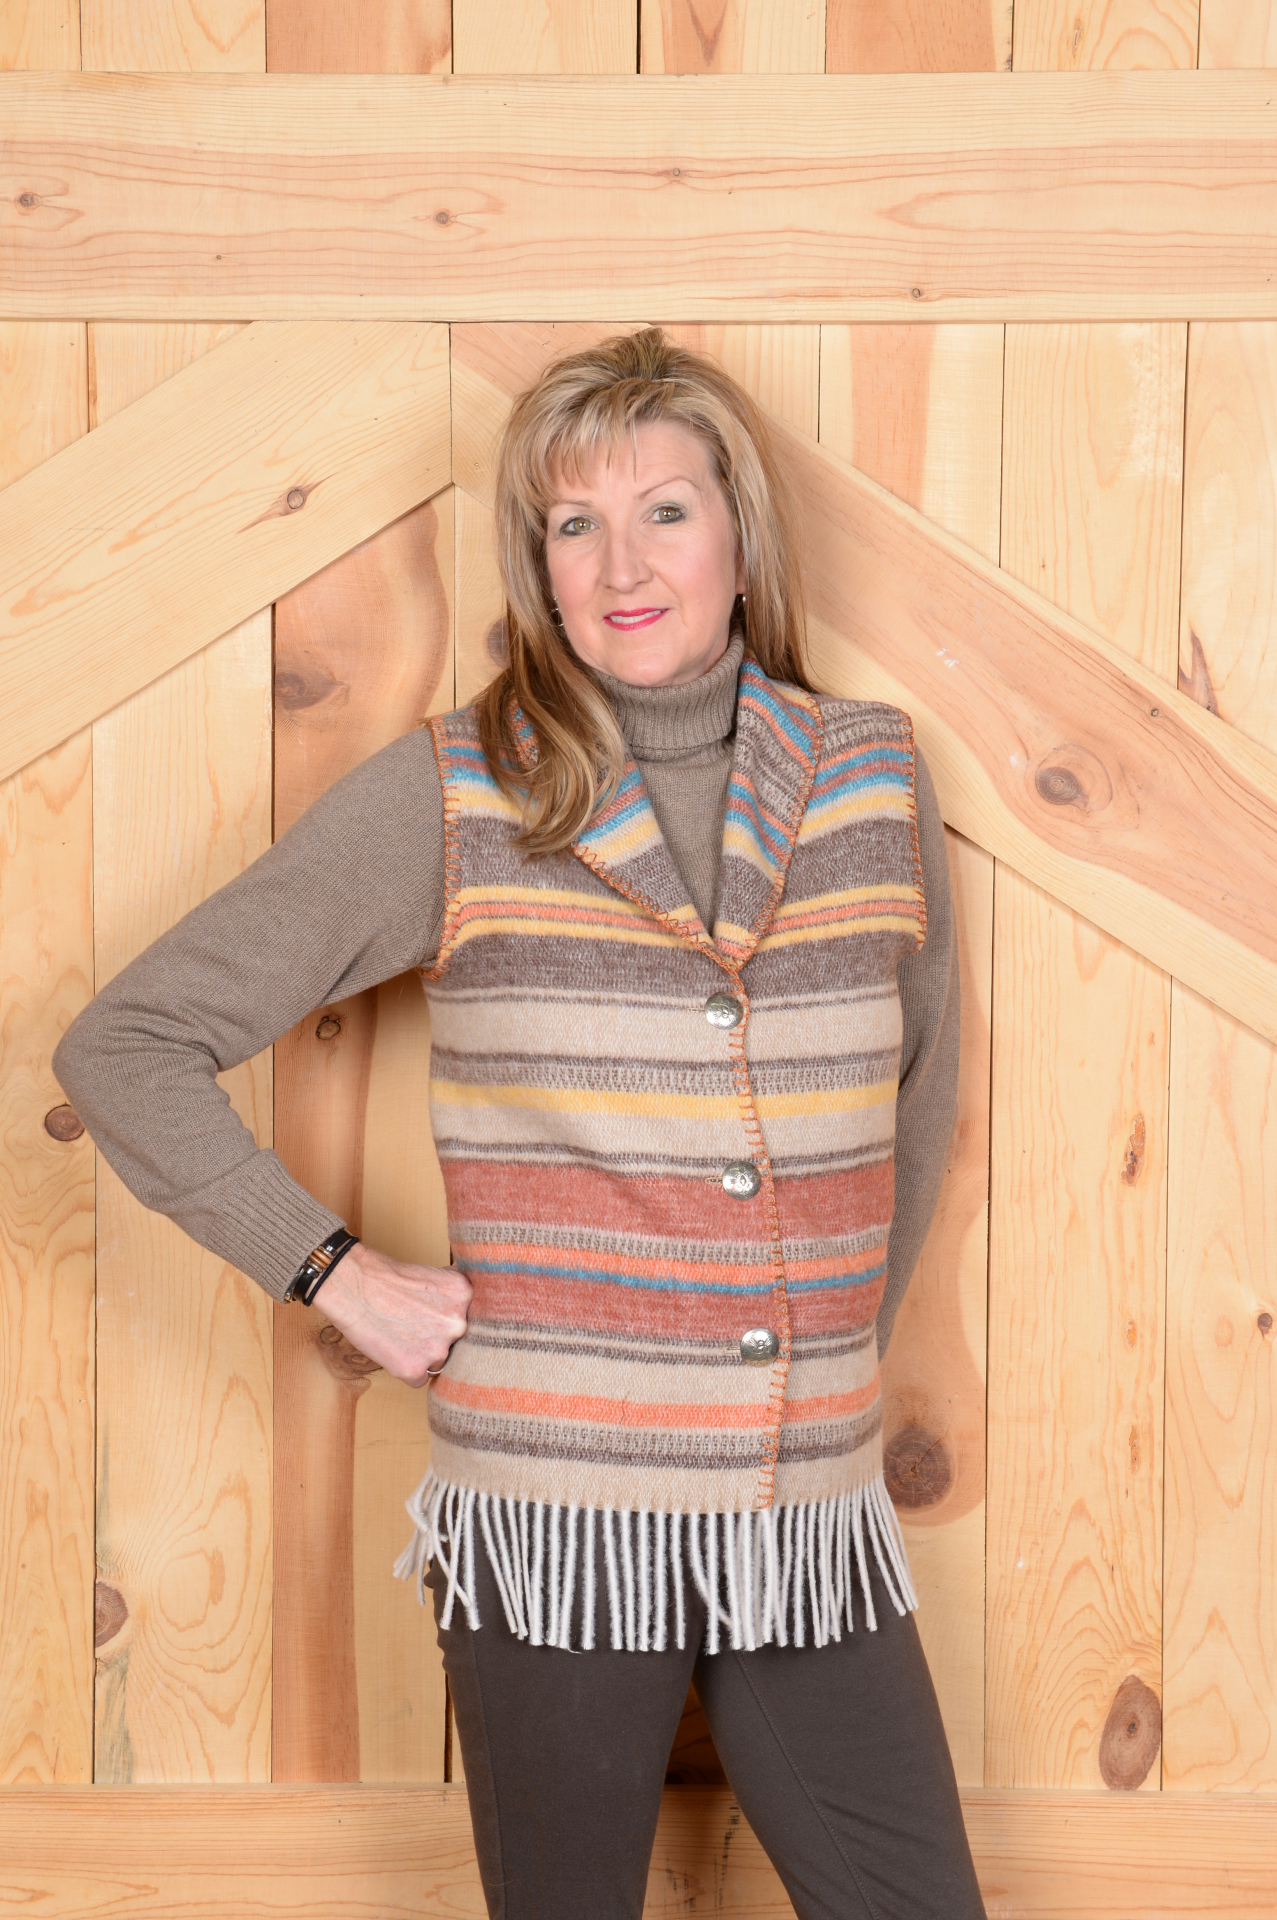 #131ARF - ARAPAHOE FRINGE SHAWL COLLAR VEST - WAS $84.95 -- SALE $42.48 -- ALL SIZES AVAILABLE!